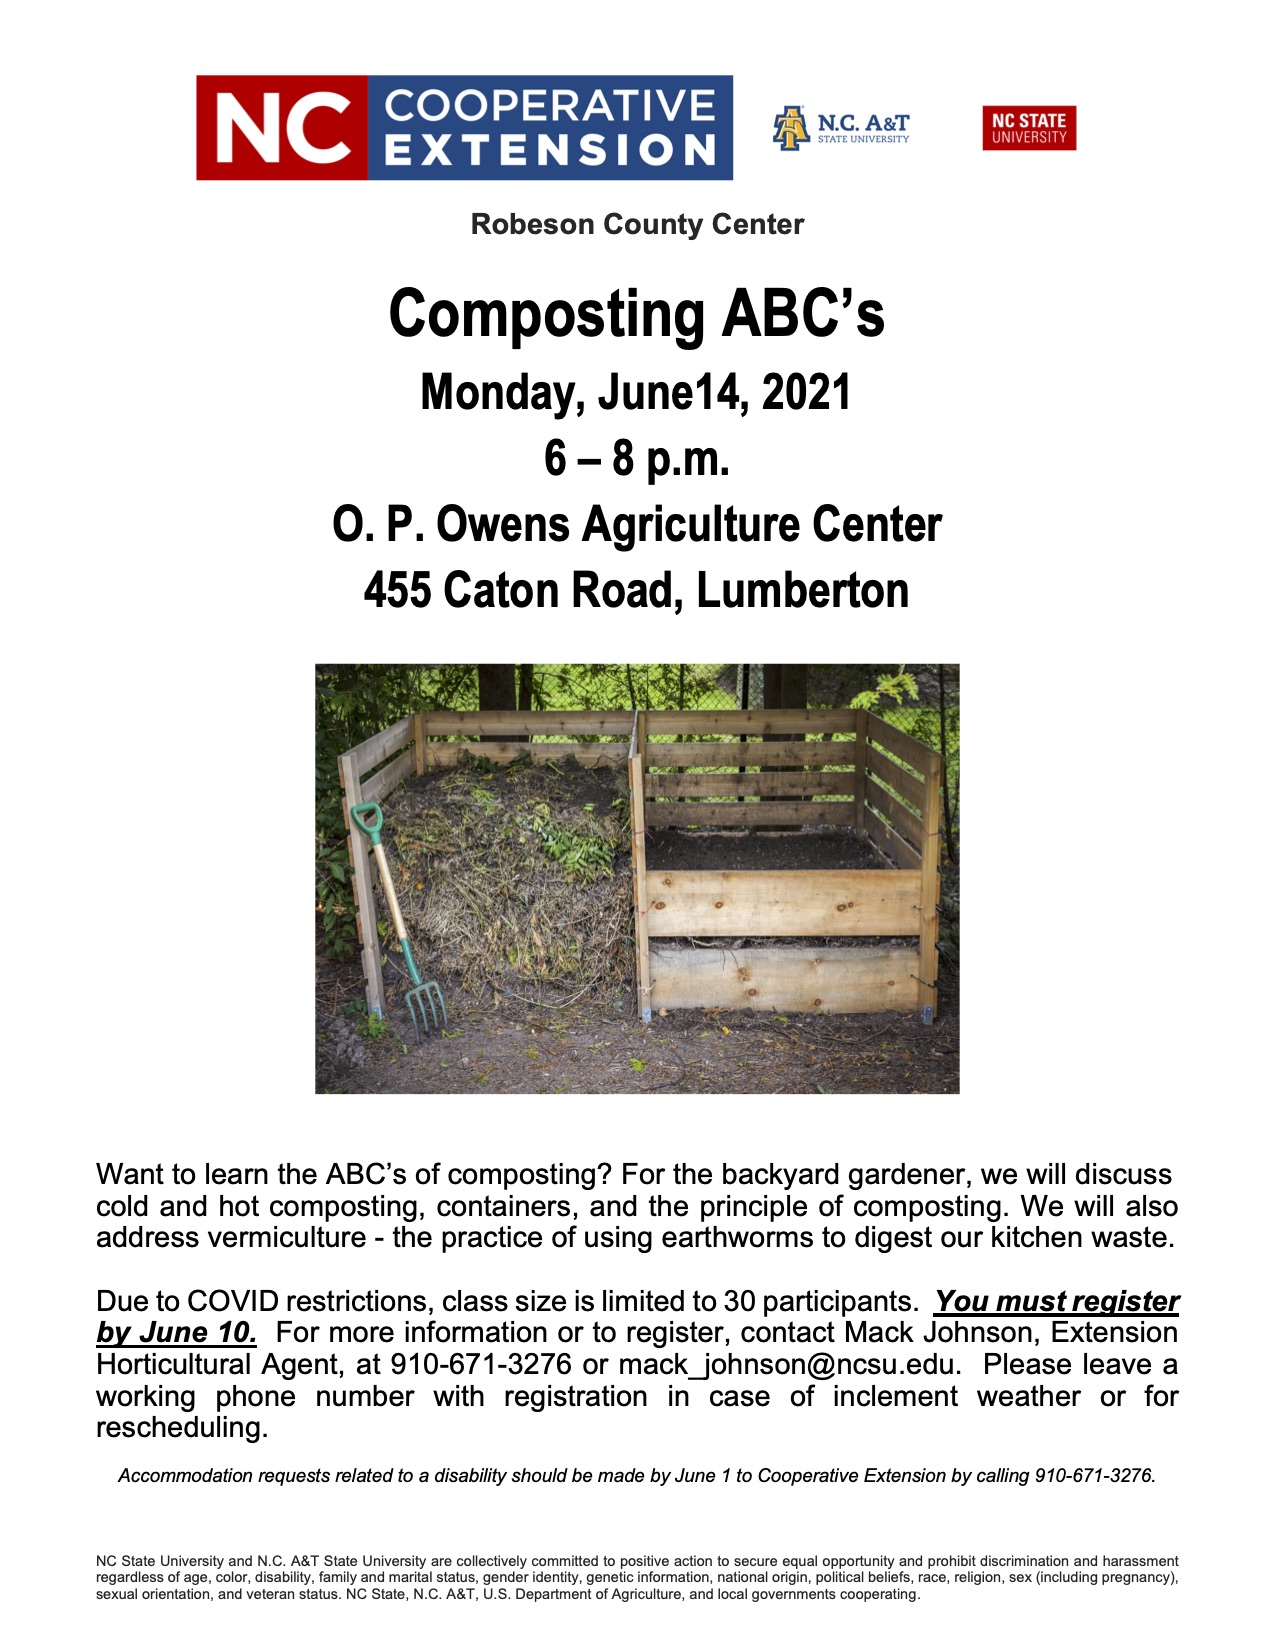 Flyer for composing